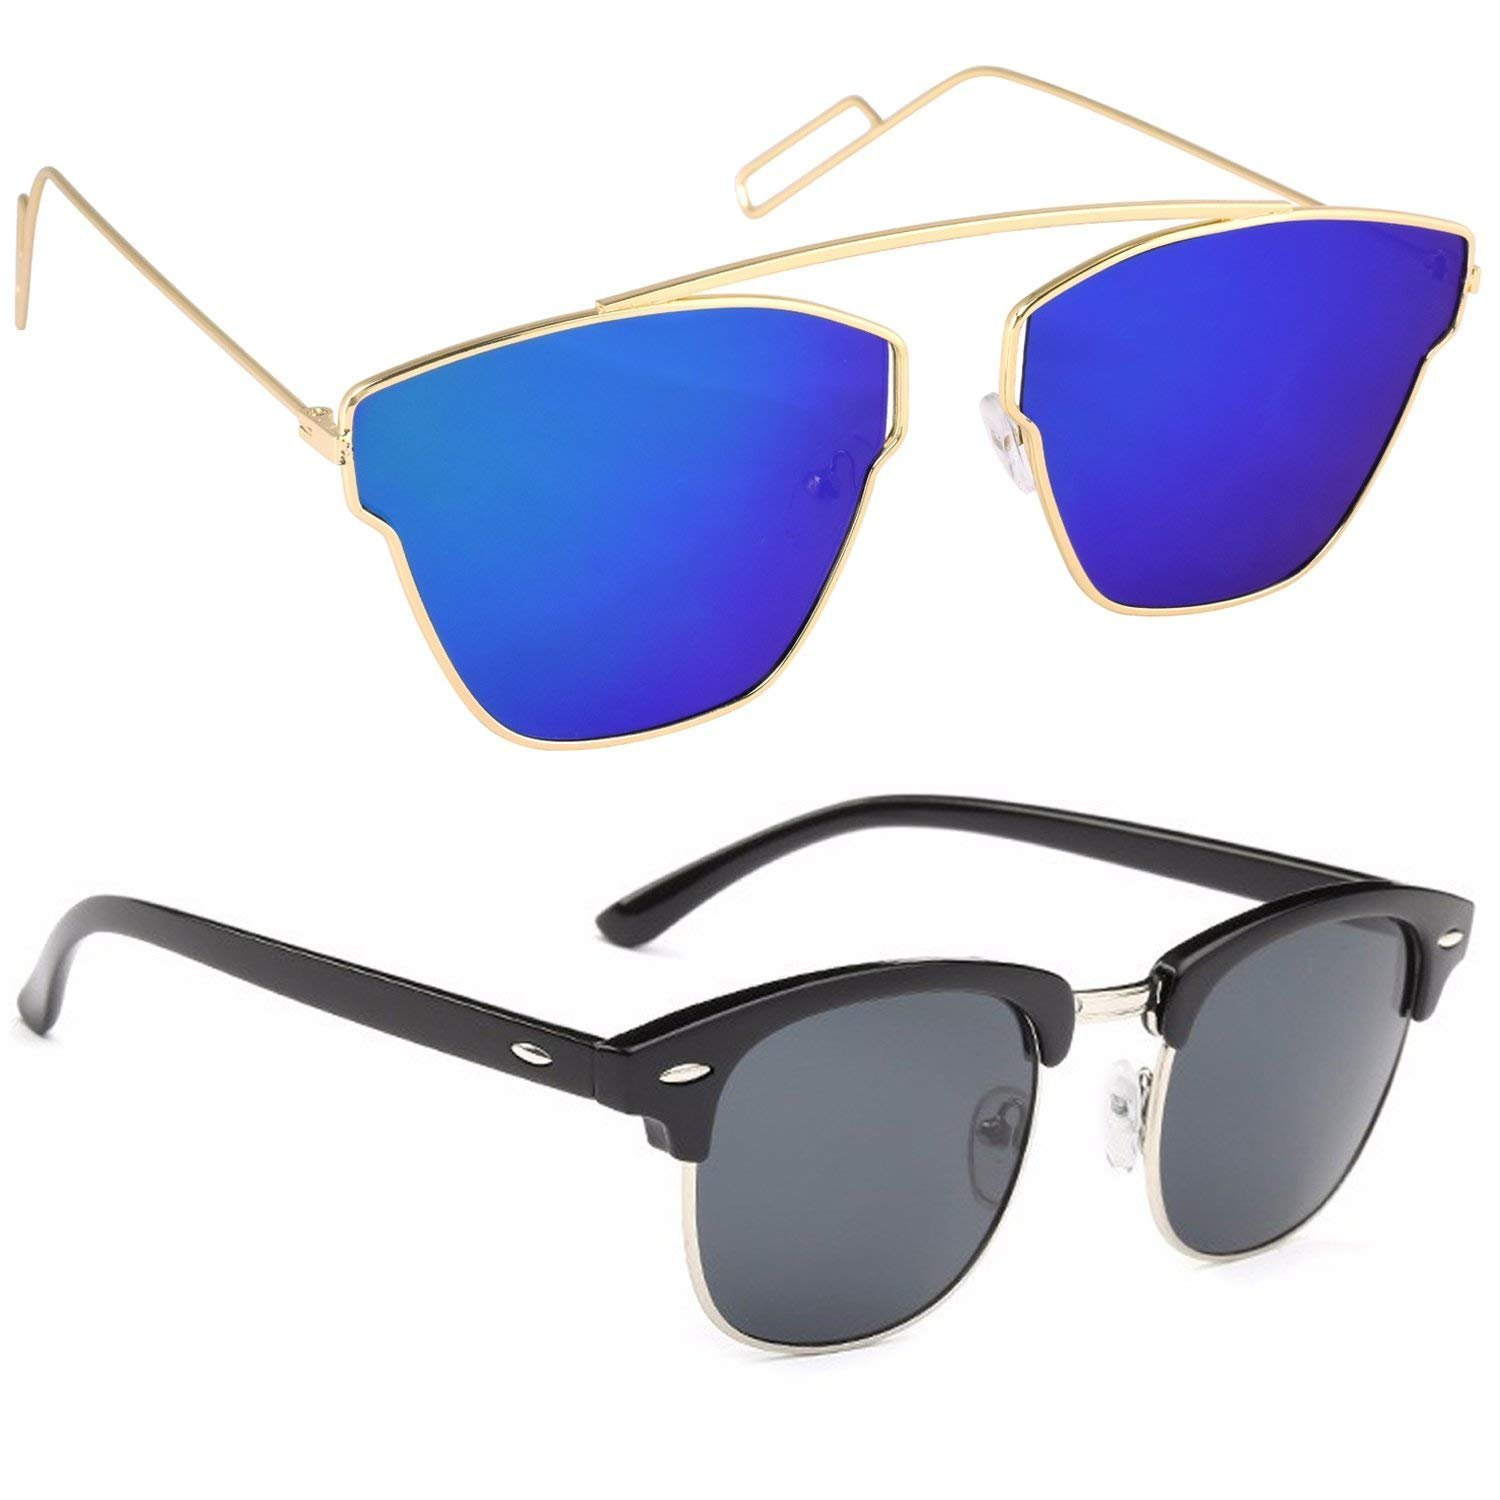 0fec1f0f71c Xforia Fancy Boys Blue   Black Mercury Wayfarer   Round Sunglasses For Men    Women 2 (PL-FLX-140